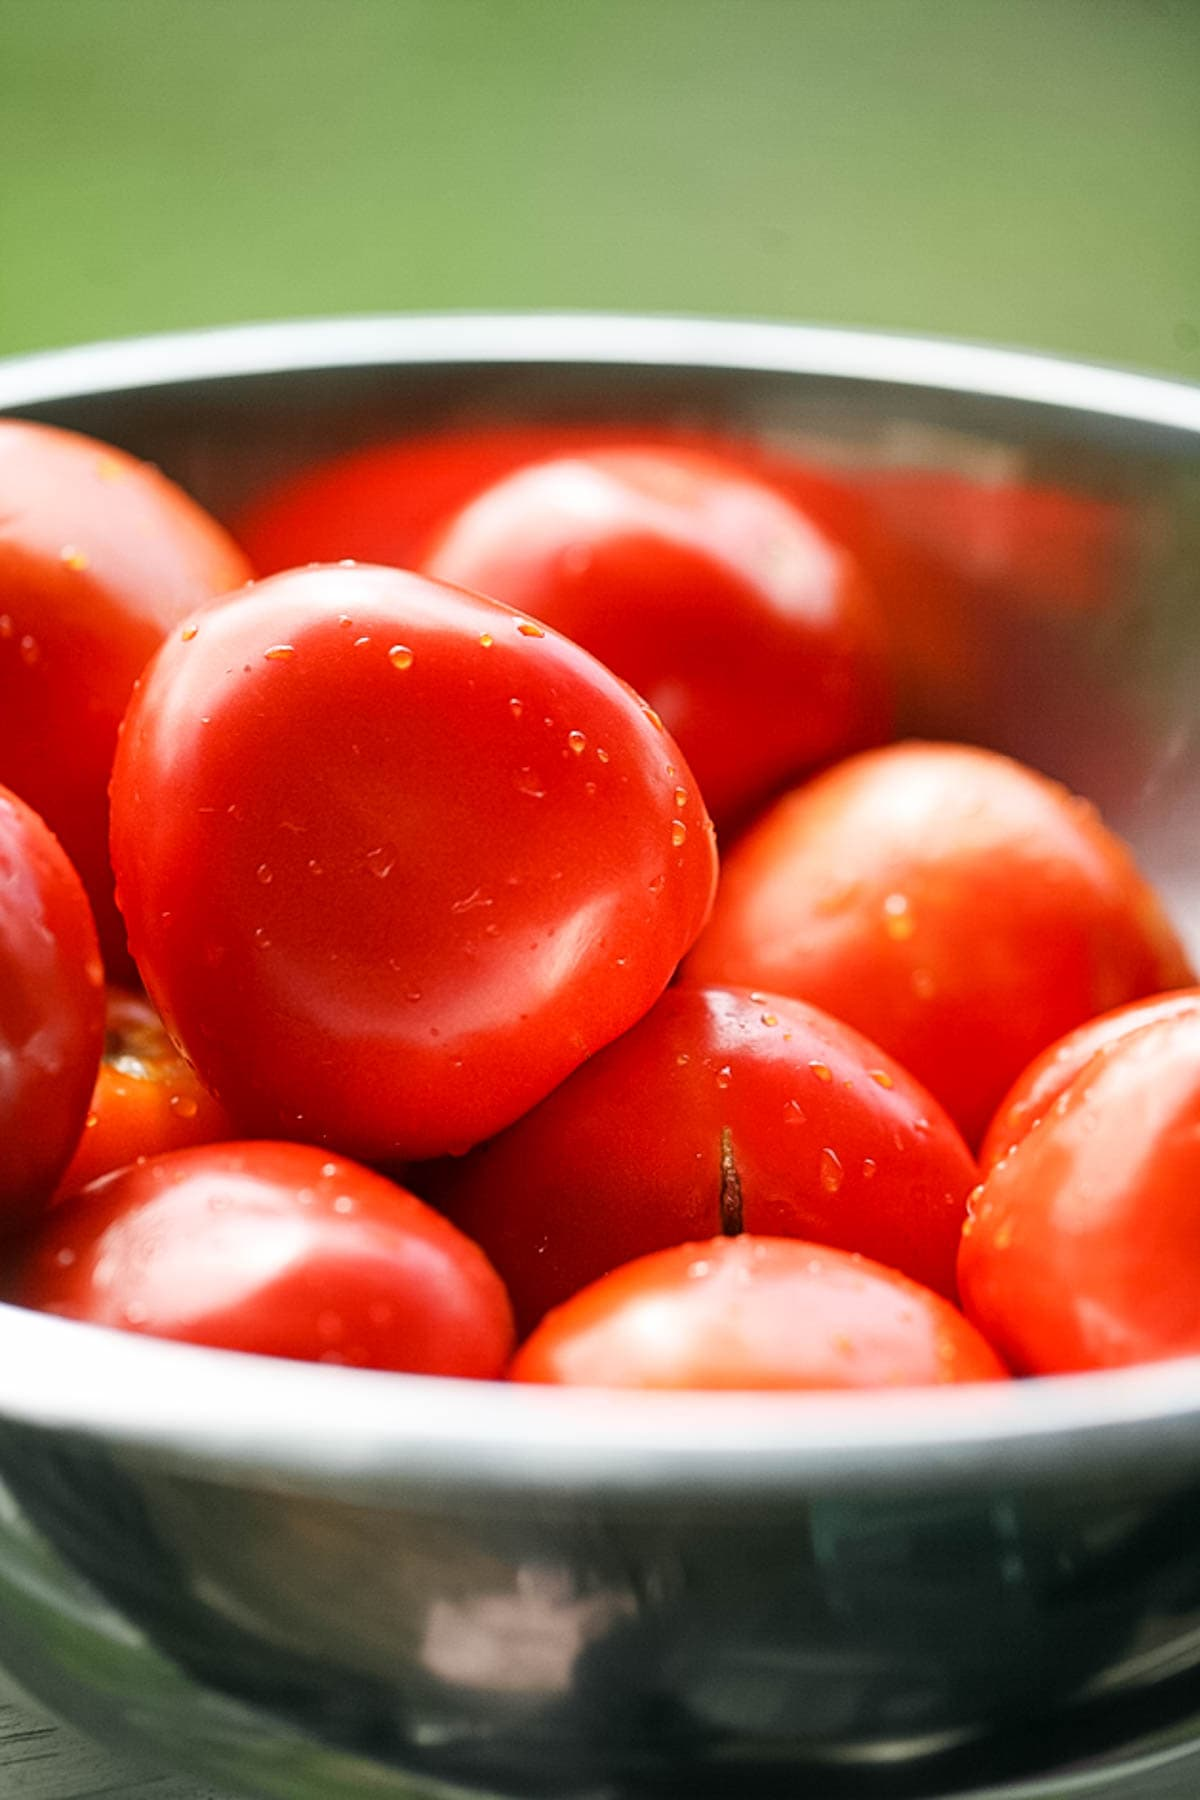 Washing tomatoes before canning sauce.